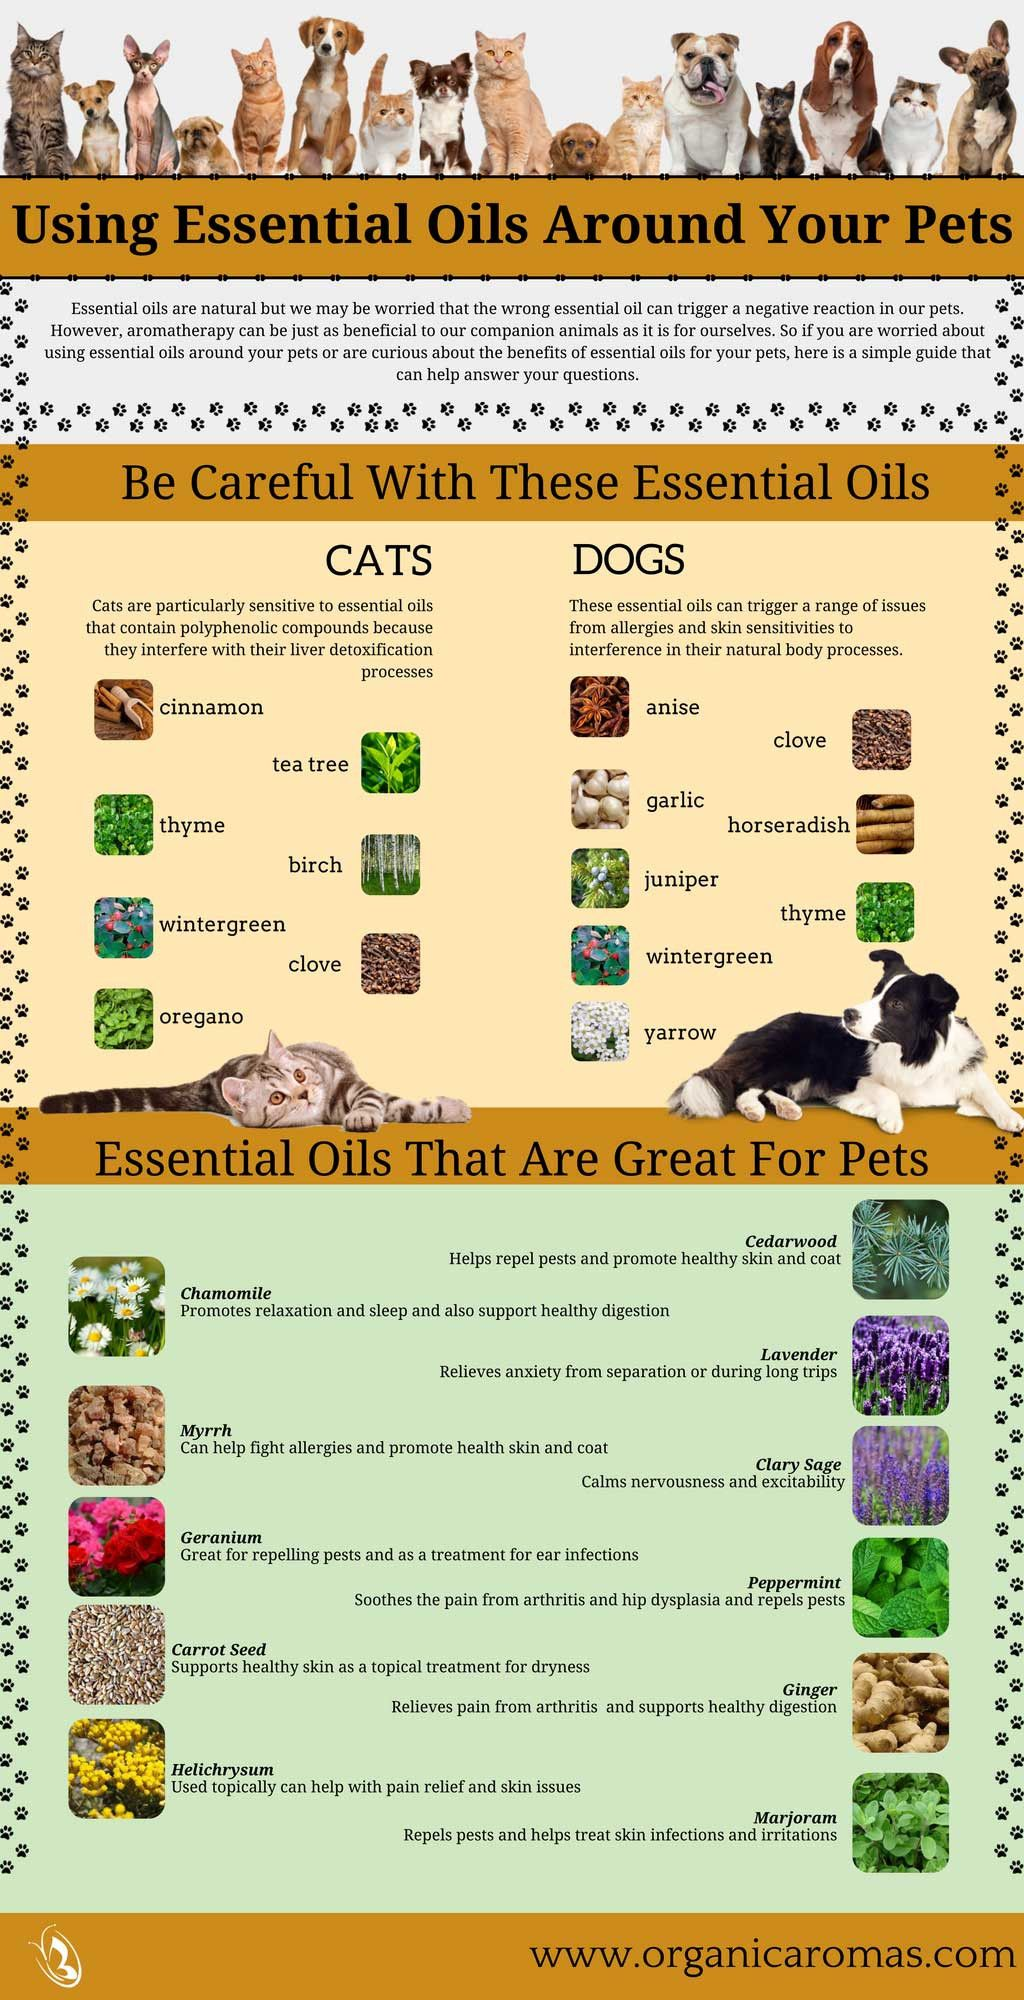 Using Essential Oils Around Your Pets - #OrganicAromas #EssentialOils #Pets